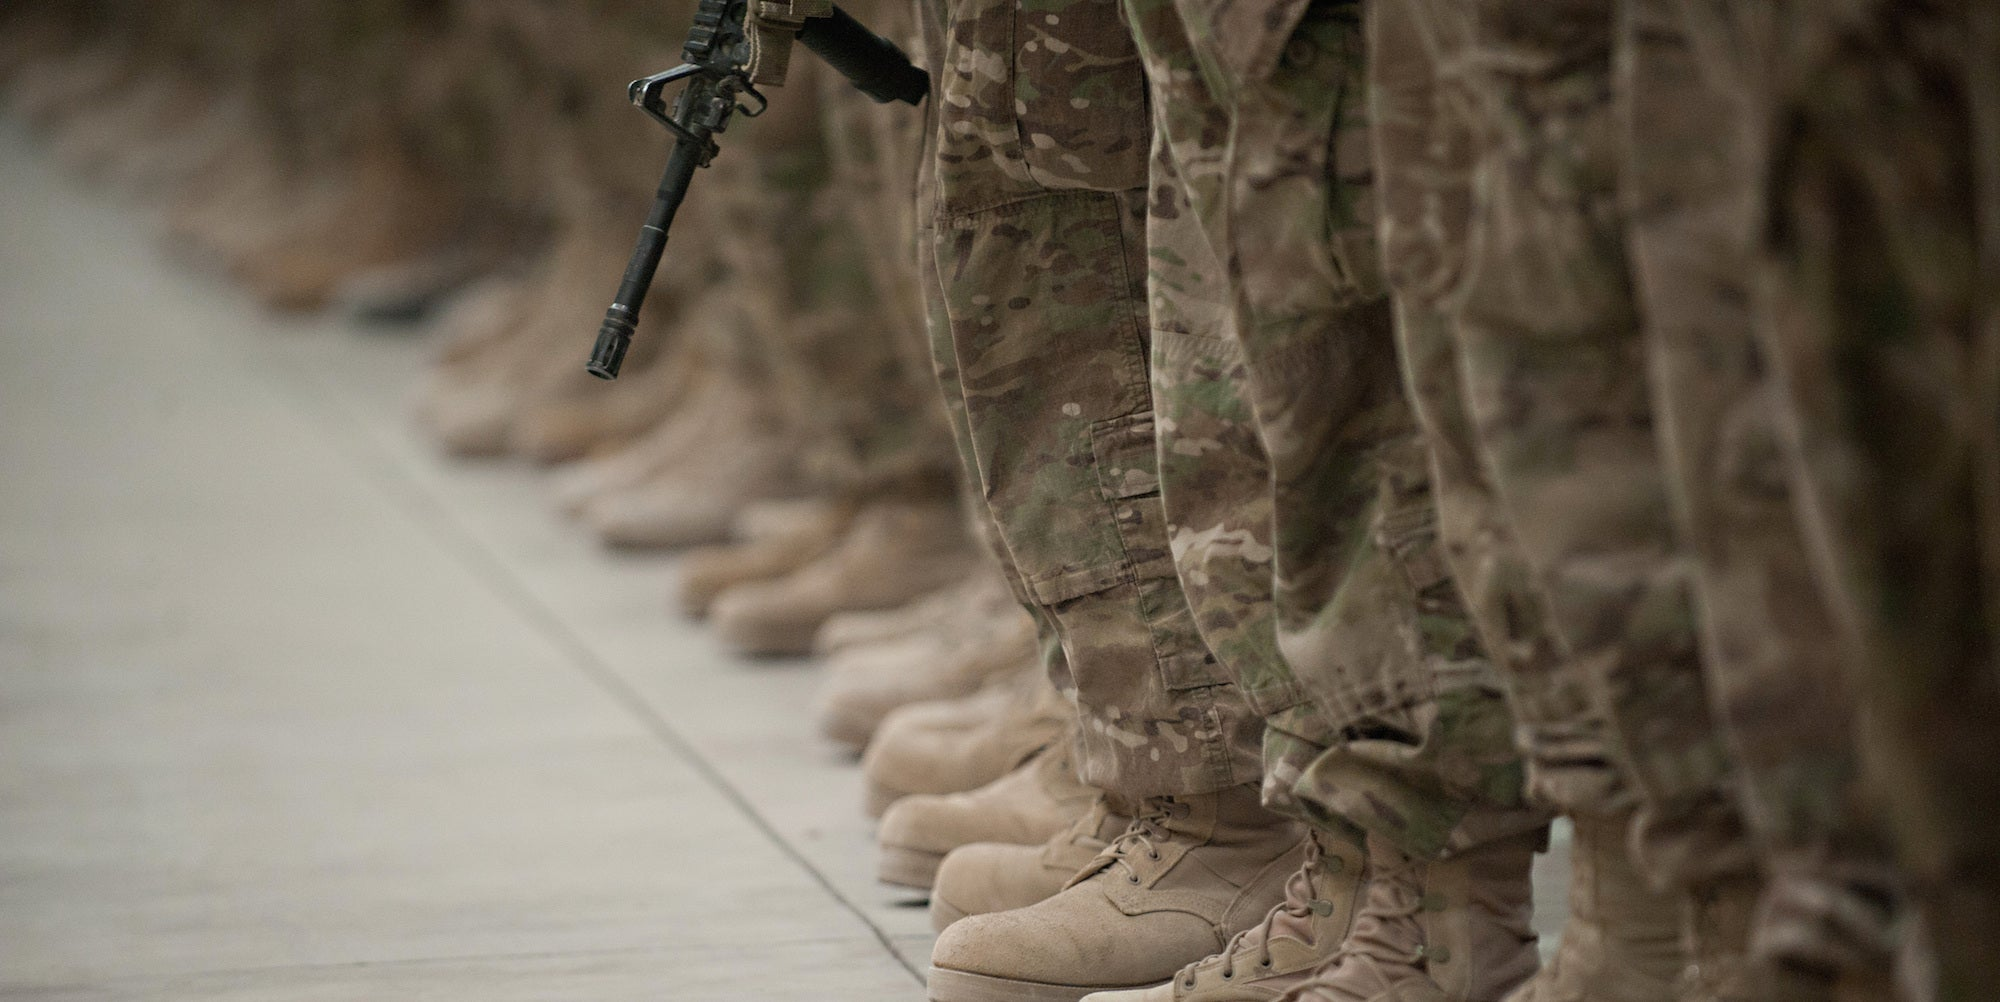 Can states fire employees who leave for military duty? The Supreme Court may decide